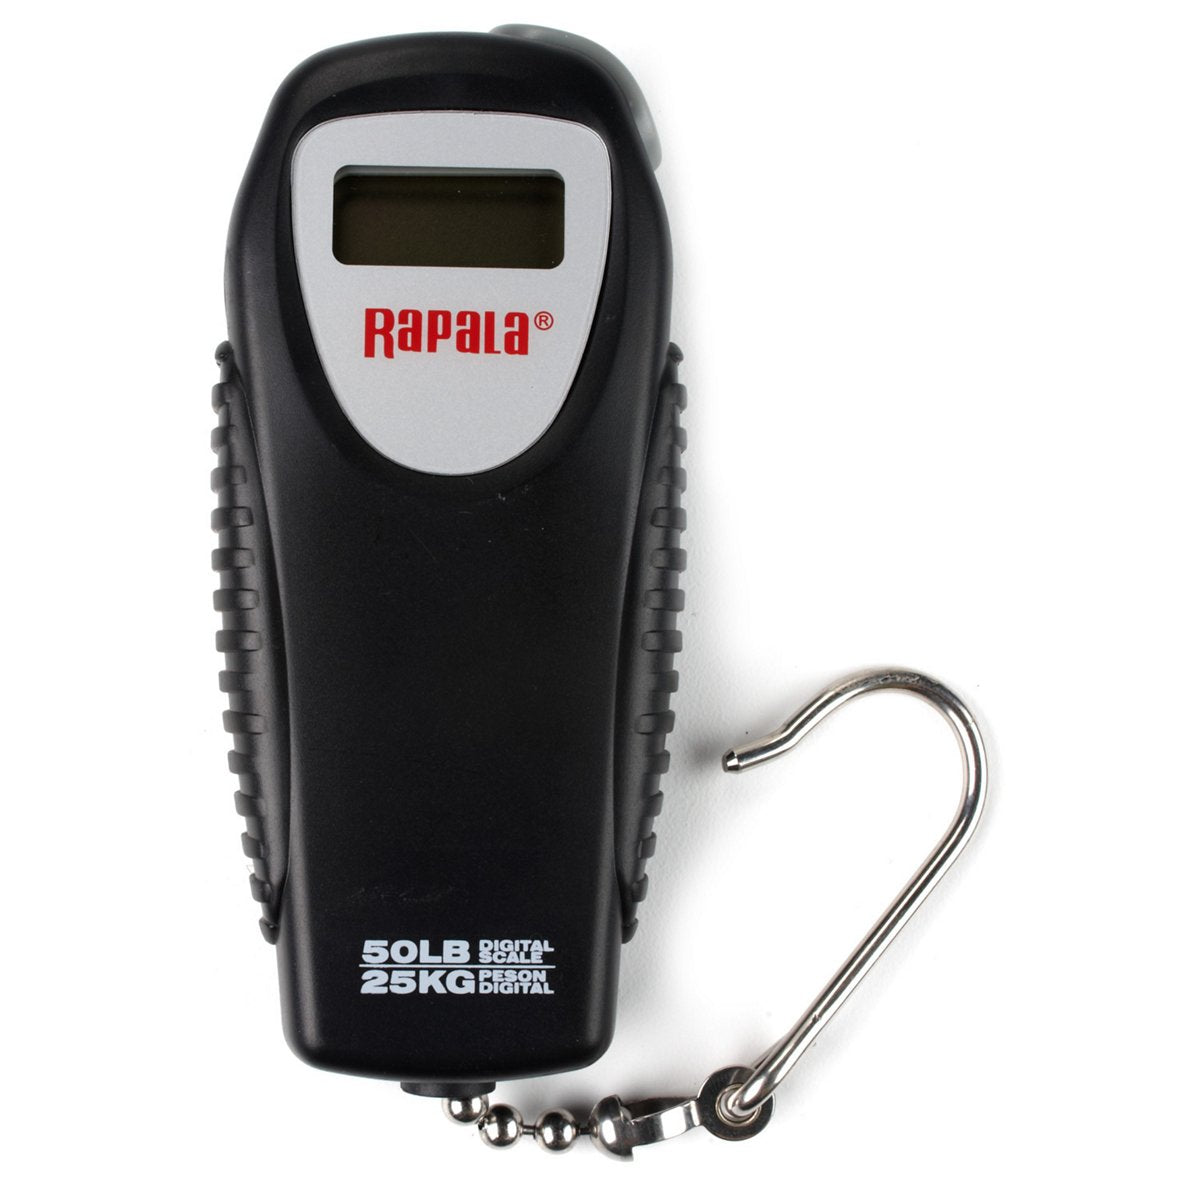 Rapala 50 lb. Mini Digital Scale - Angler's Headquarters